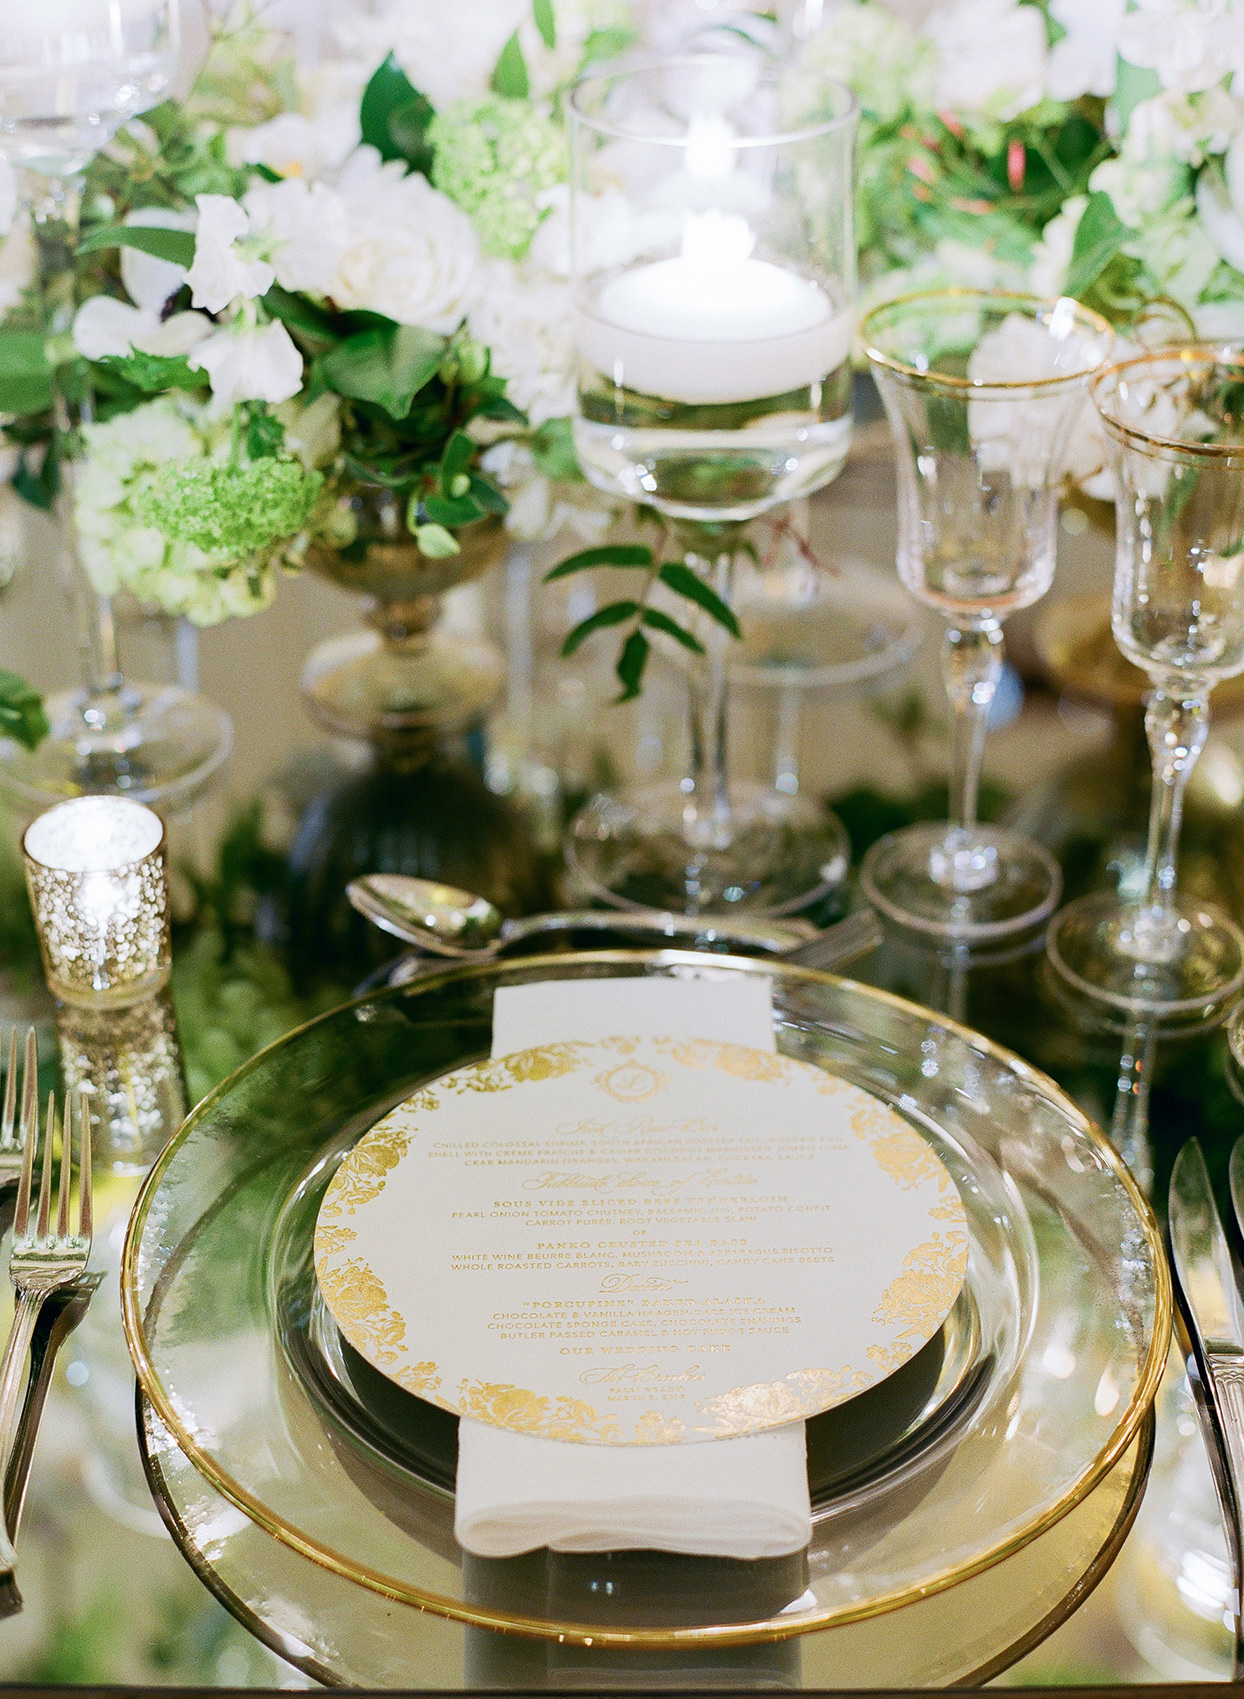 brittany brian wedding reception elegant place setting with glass plate